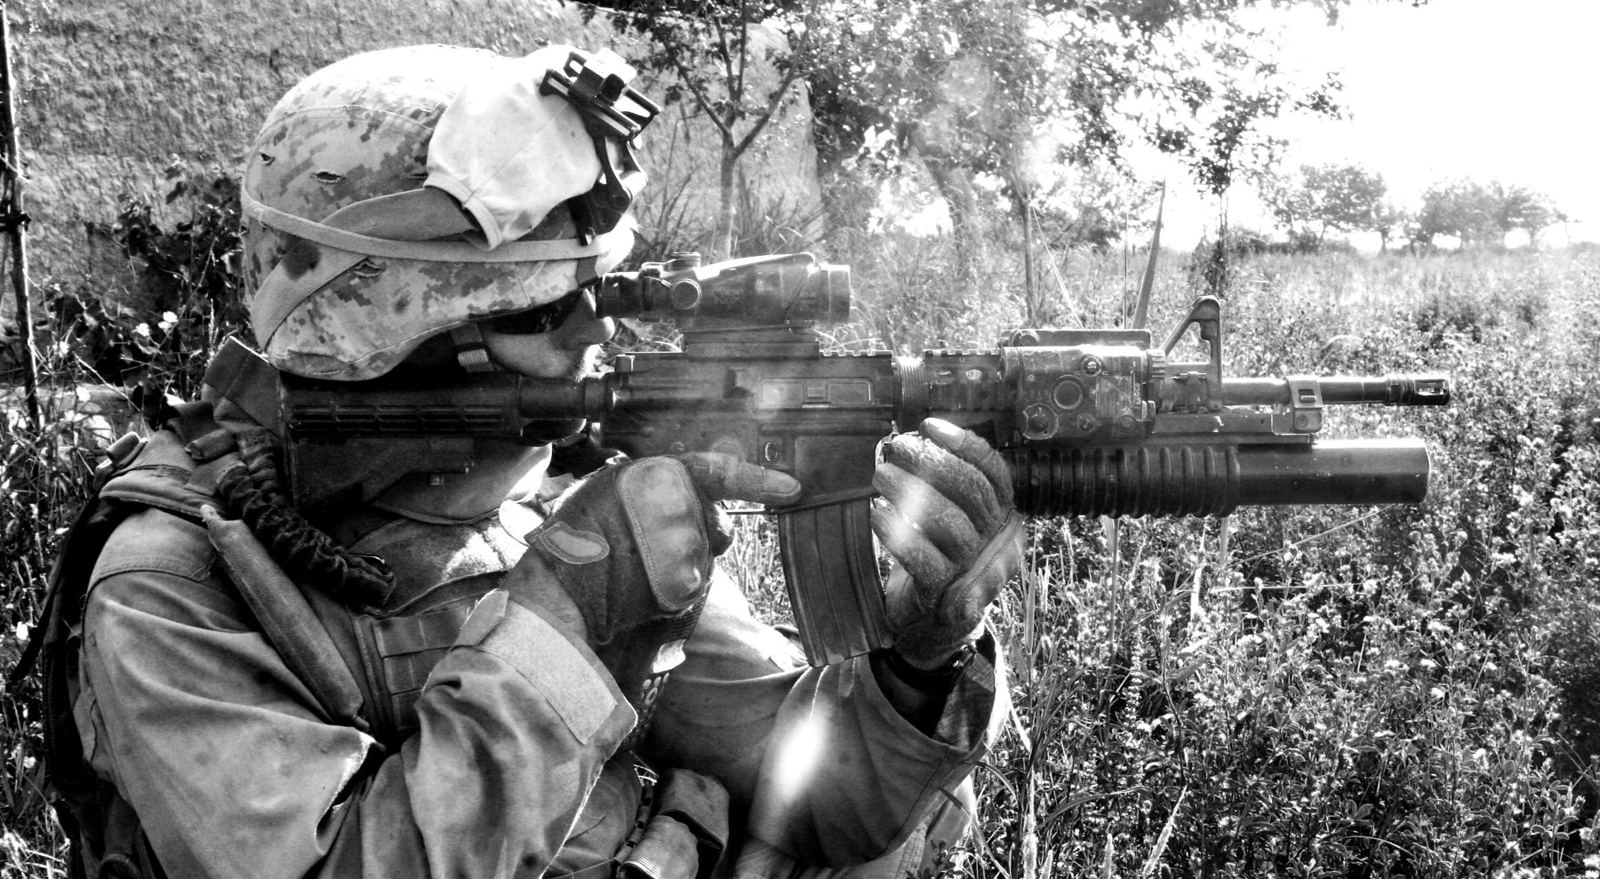 Awesome m4 carbine and girls hd wallpapers desktop wallpapers - Awesome army wallpapers ...